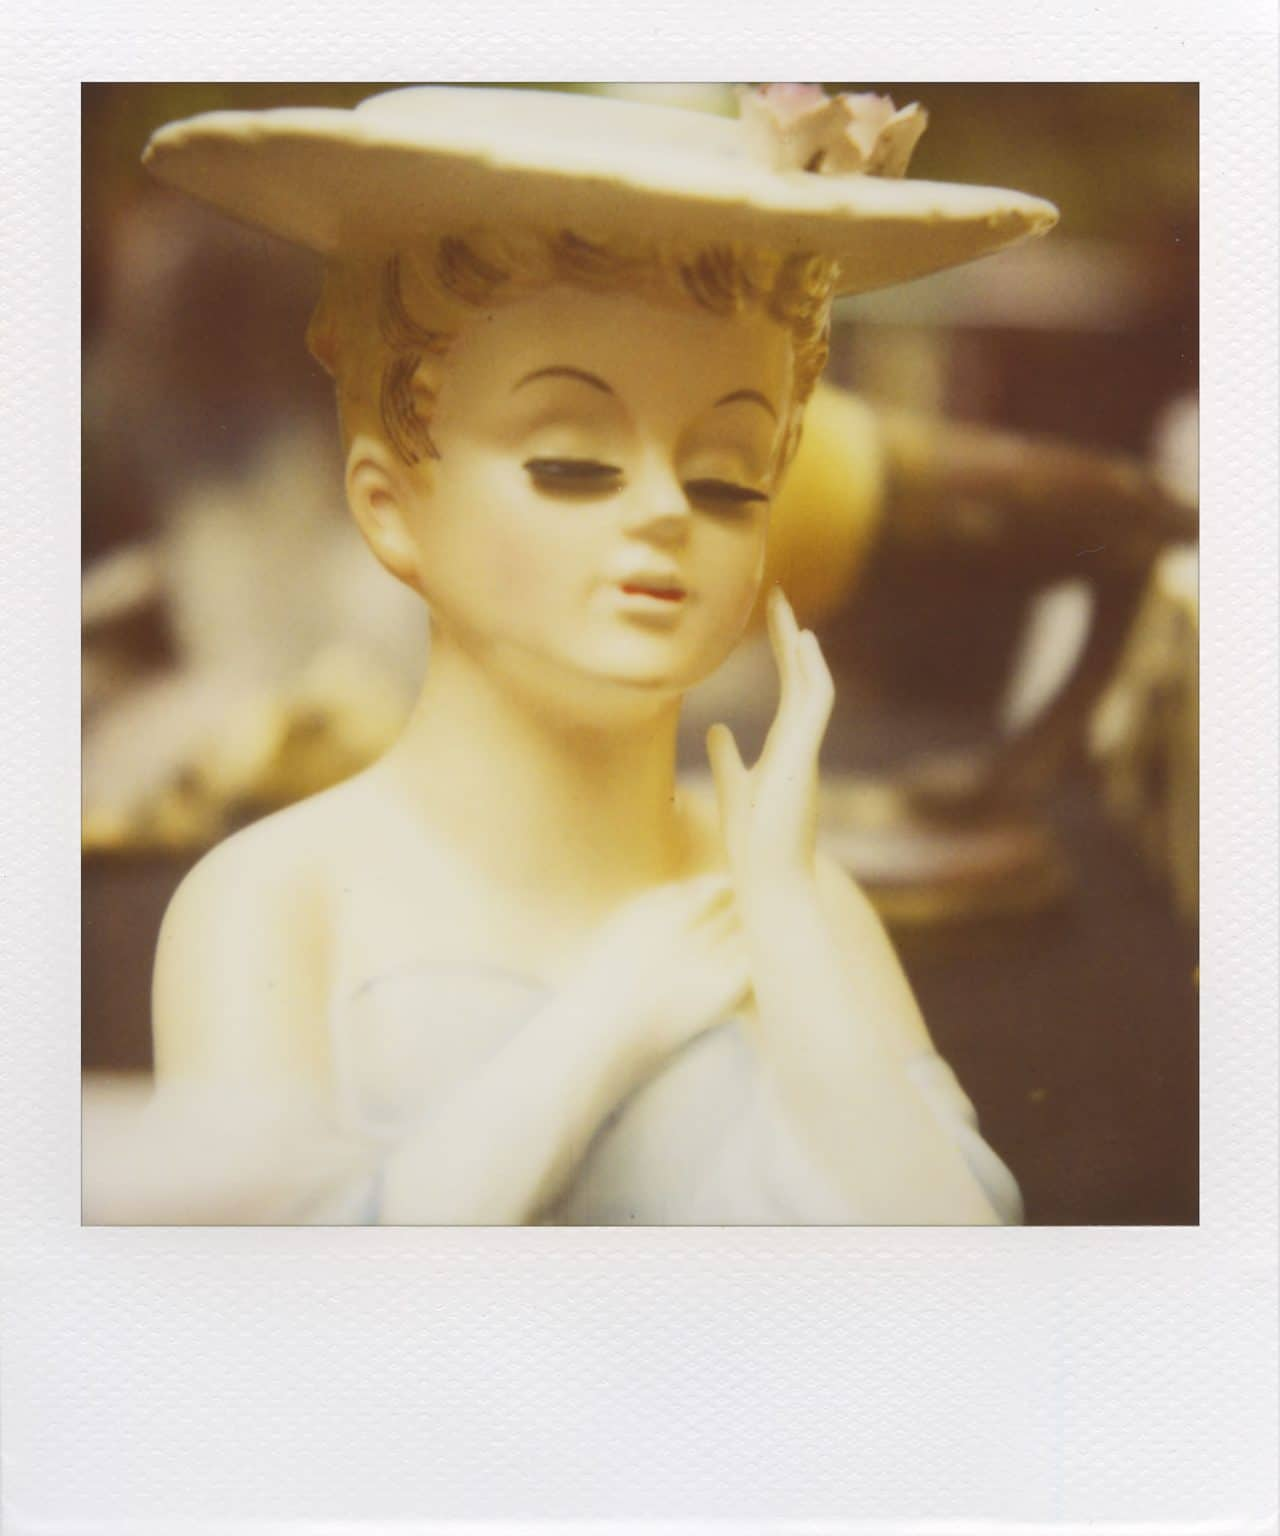 """""""Susie Flowerpot"""" (NYC 2011) - Polaroid SX-70 Alpha 1 Land Camera with expired Polaroid 600 film and ND pack filter"""